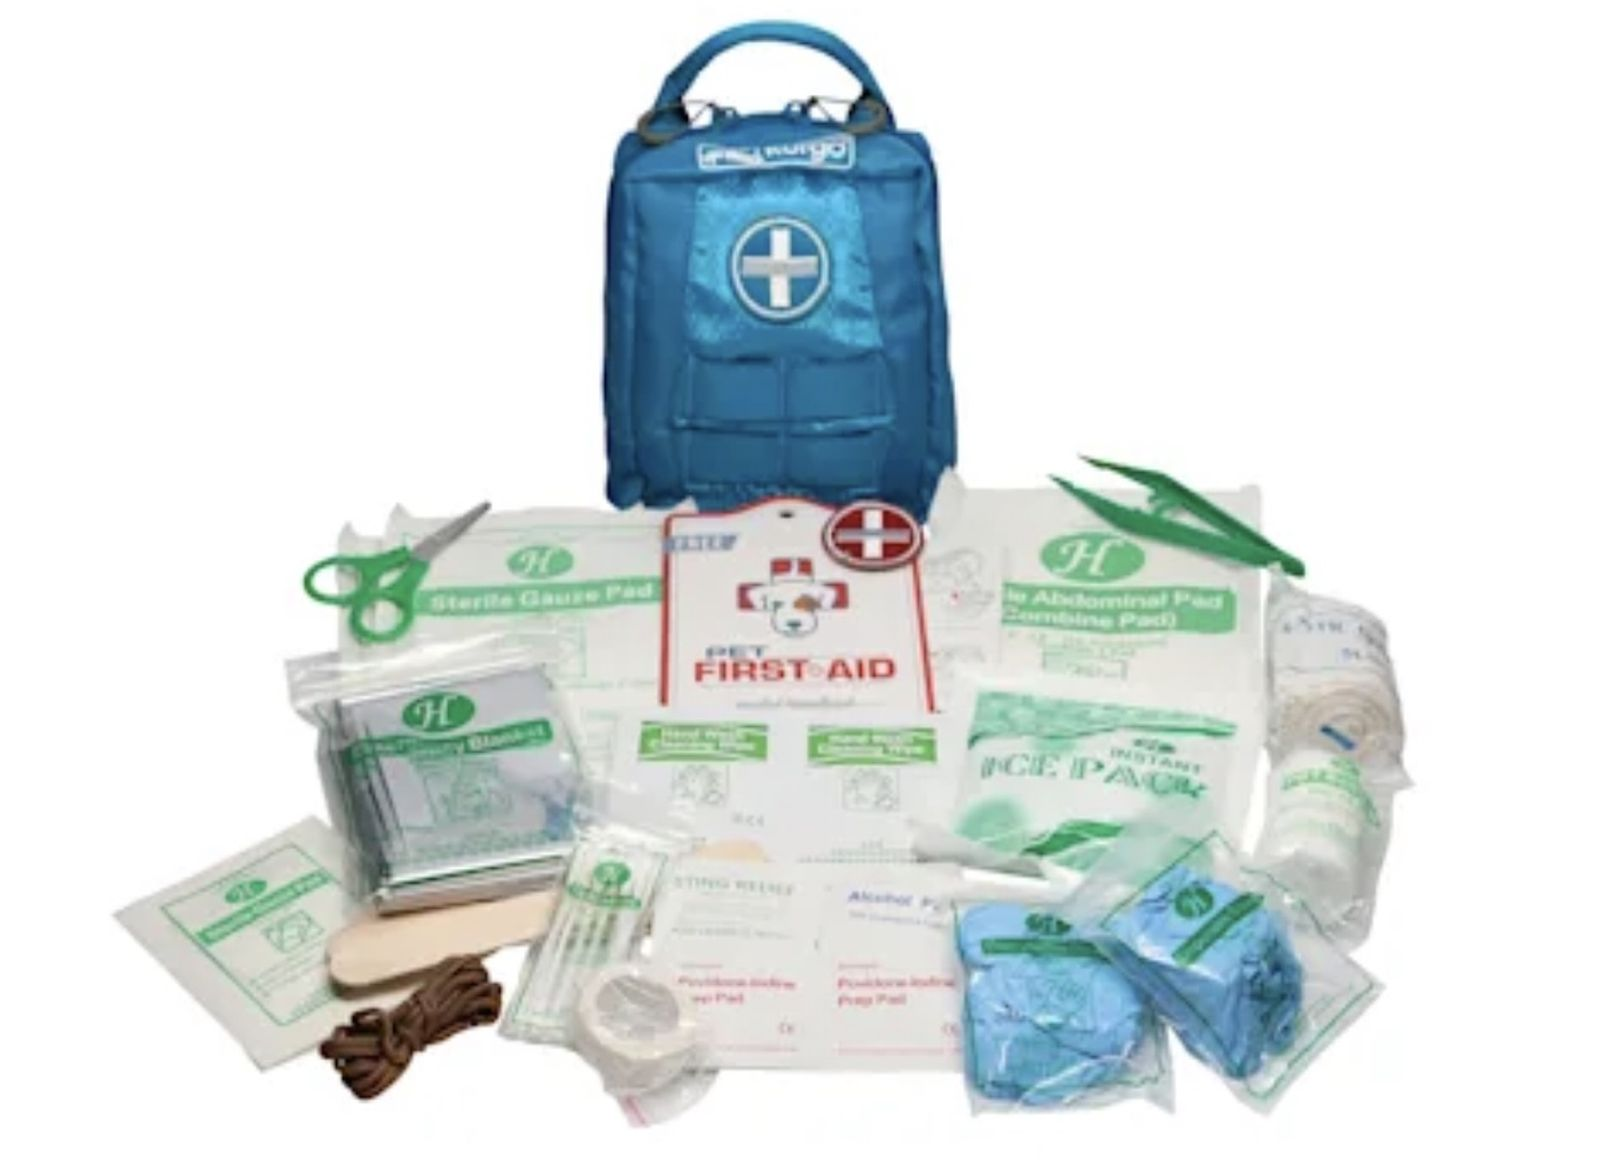 Kurgo Blue First Aid Kit for Dogs best trail dog gear